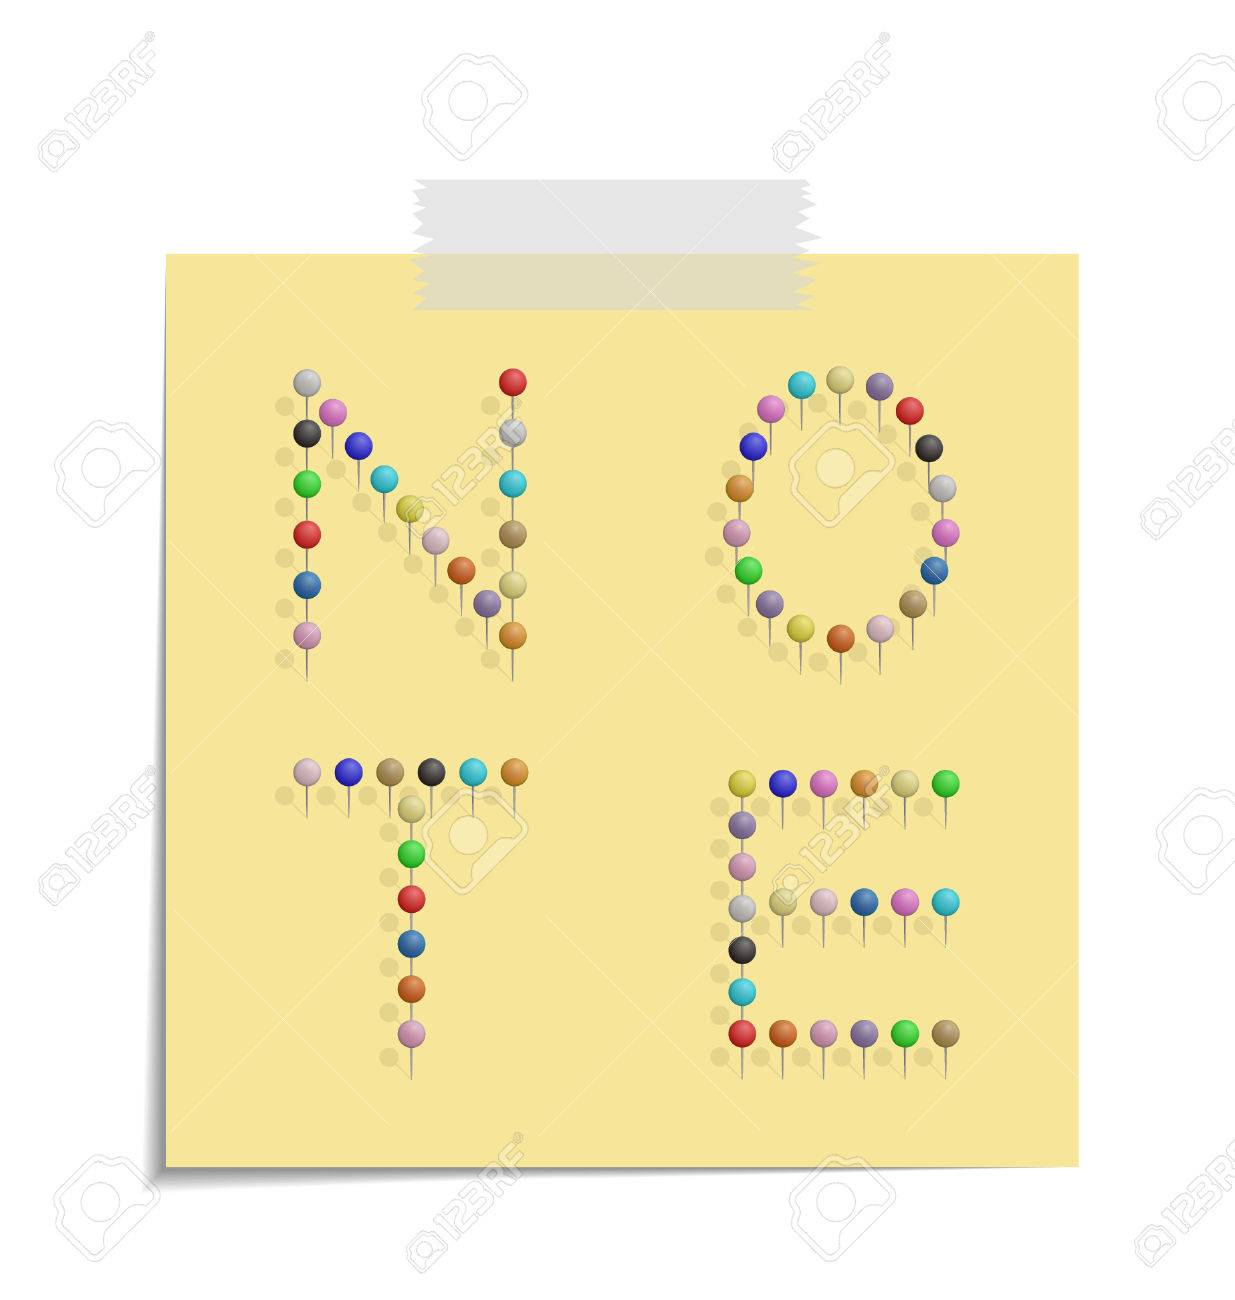 Design Of A Post With Push Pins Forming The Word Note Royalty Free ...